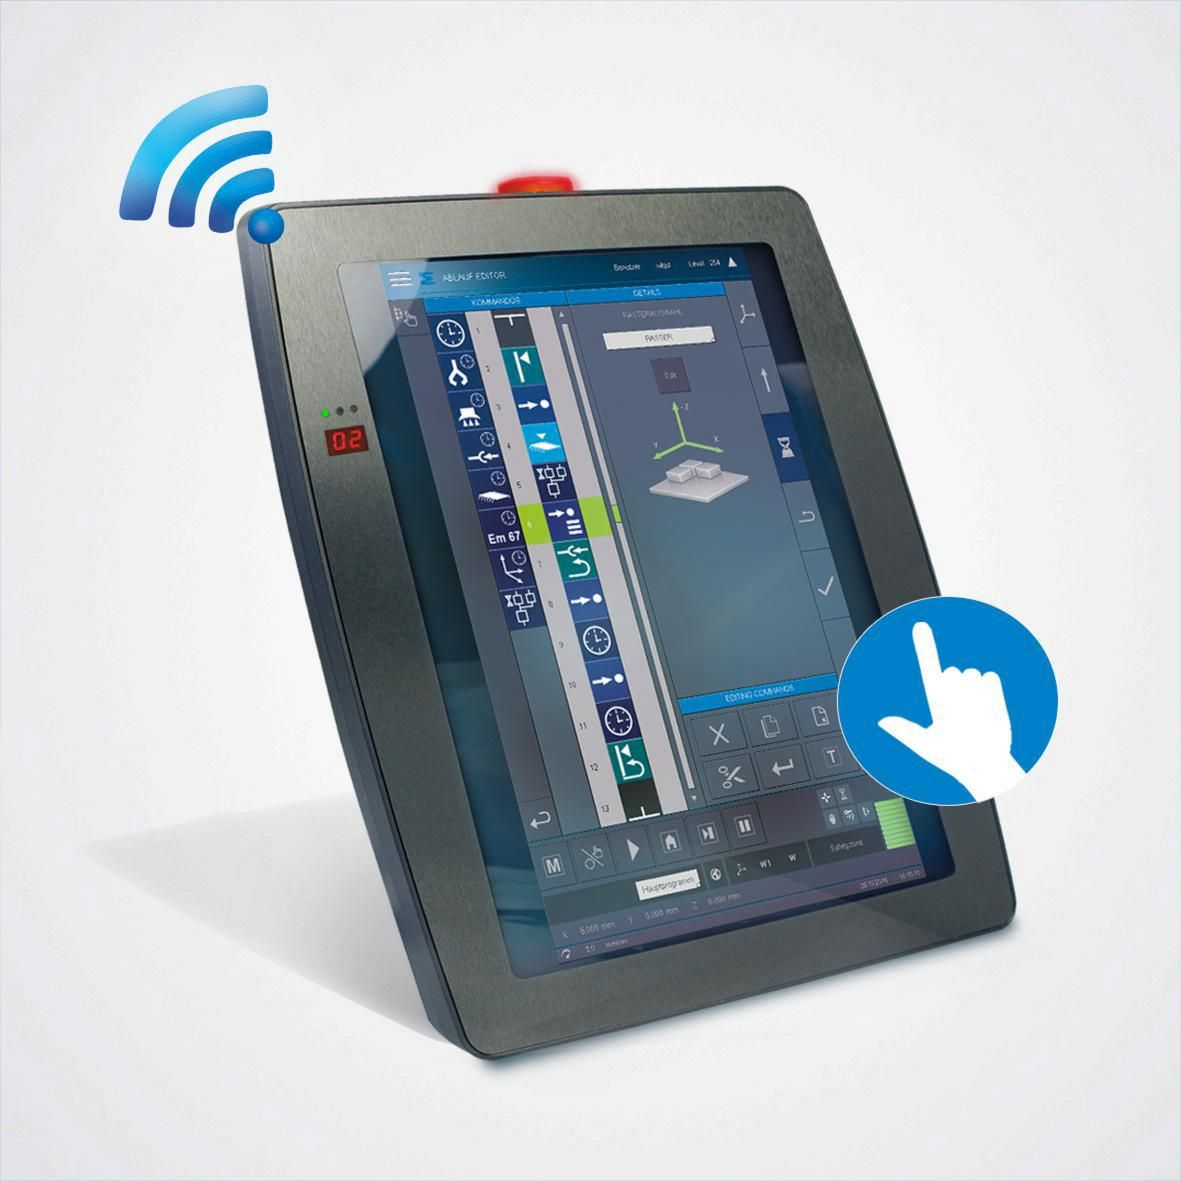 Wireless, Multi-touch & Safety Functions: The HGW 1033